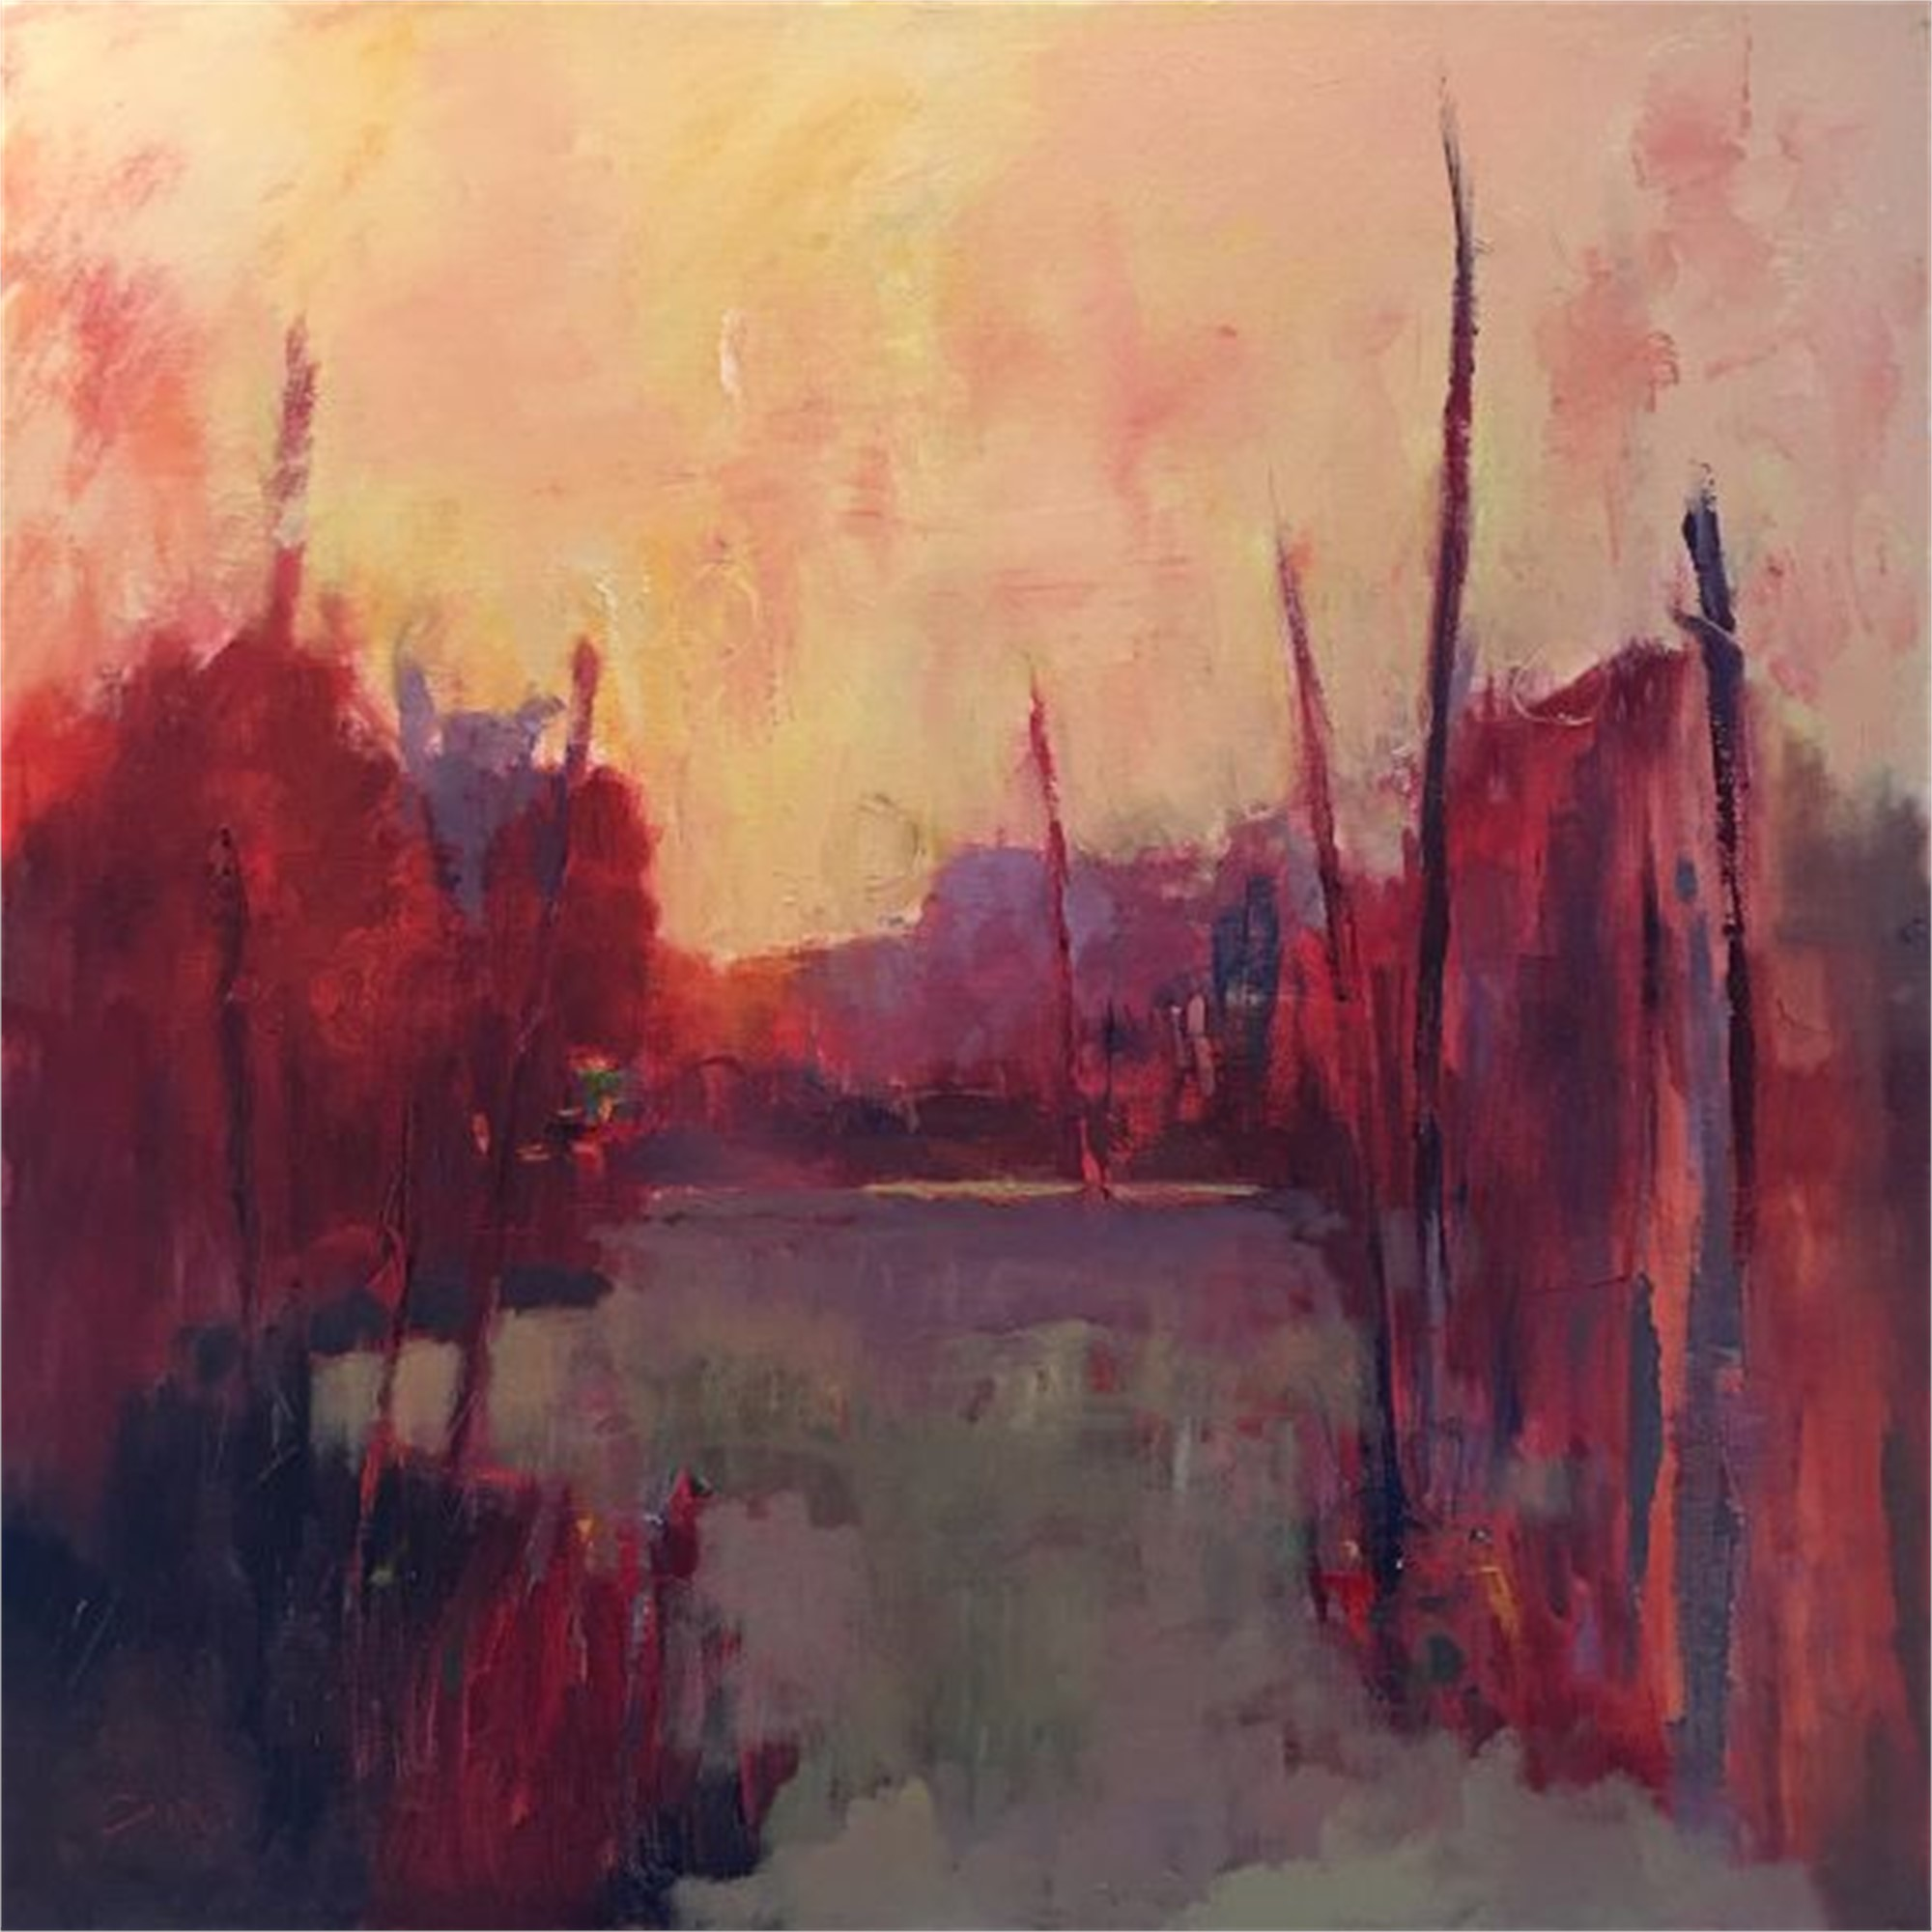 Up River by James Calk